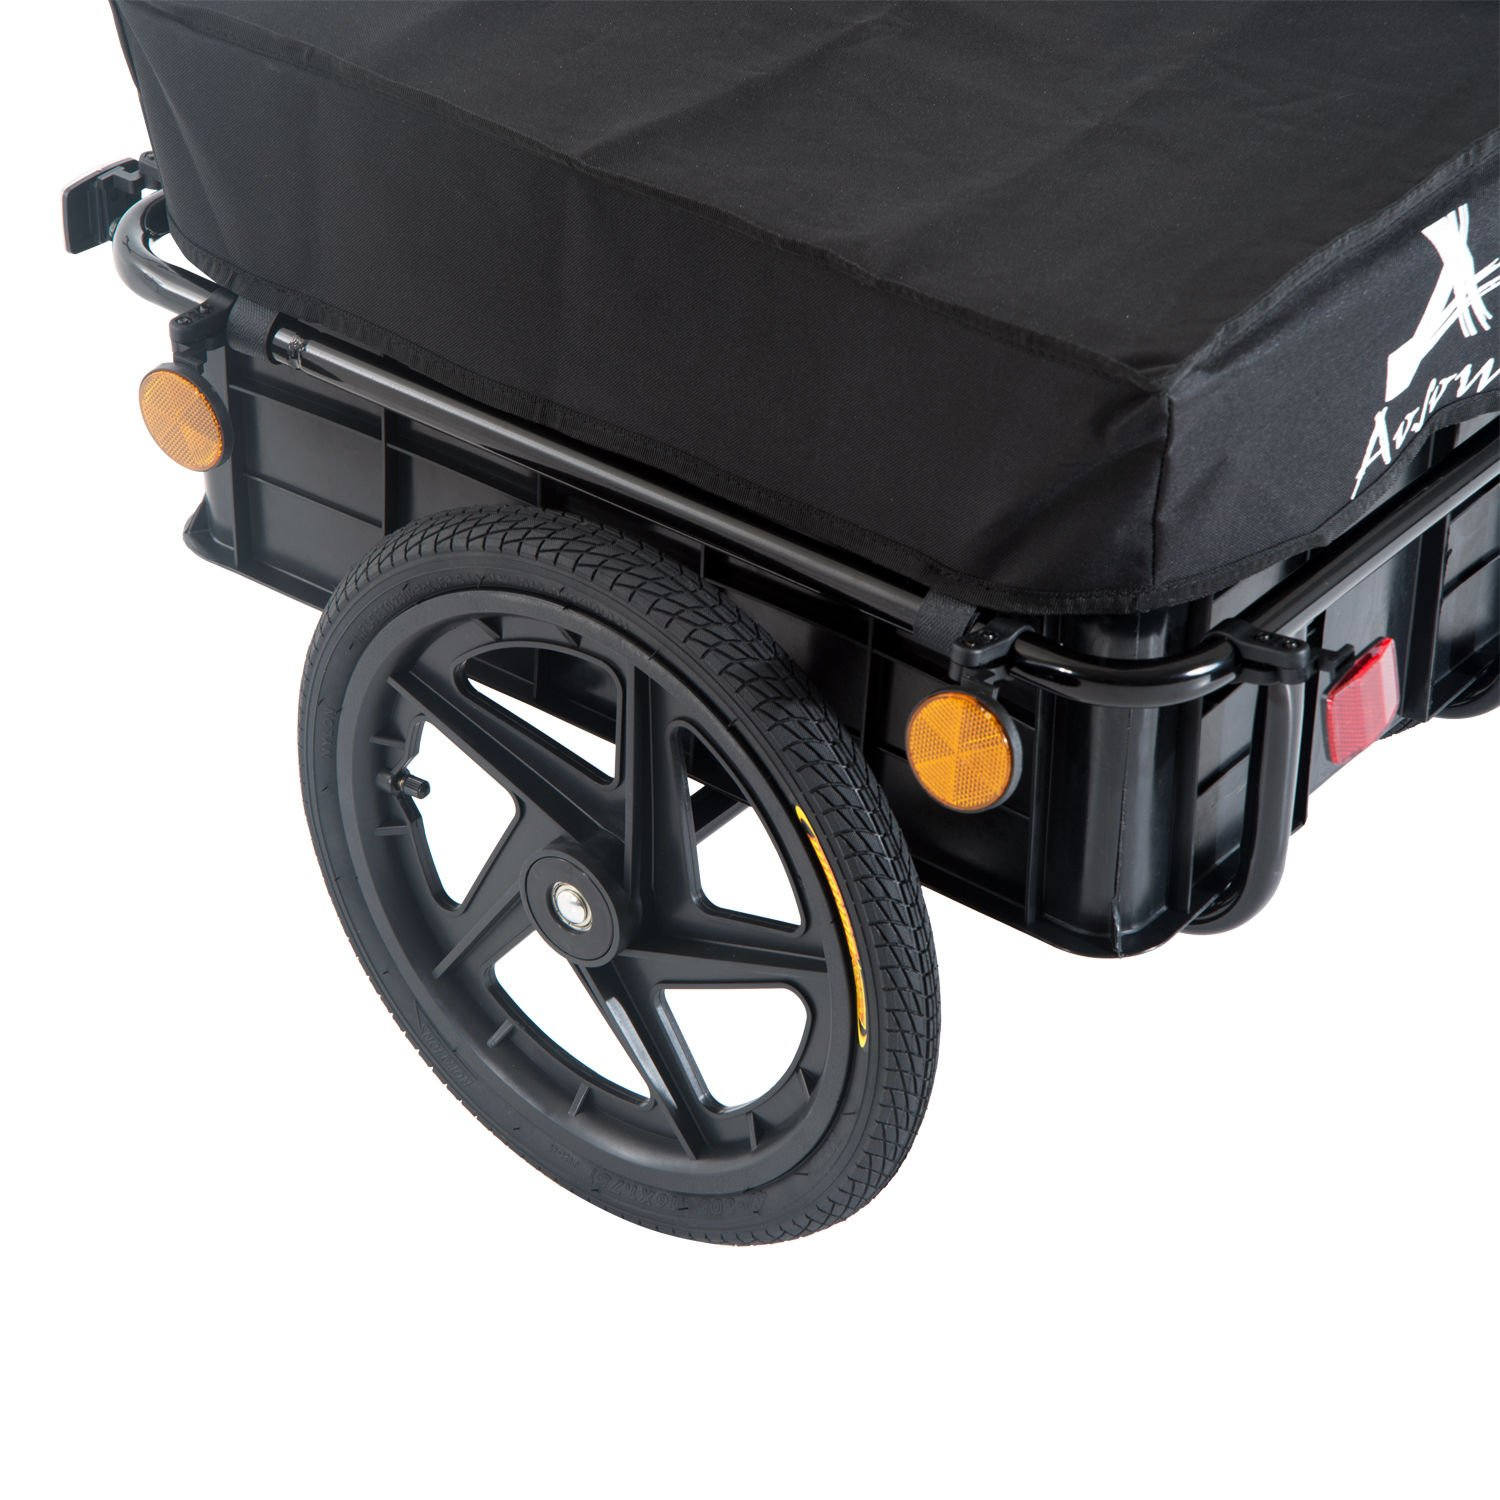 Aosom Enclosed Bicycle Cargo Trailer - Black by Aosom (Image #8)